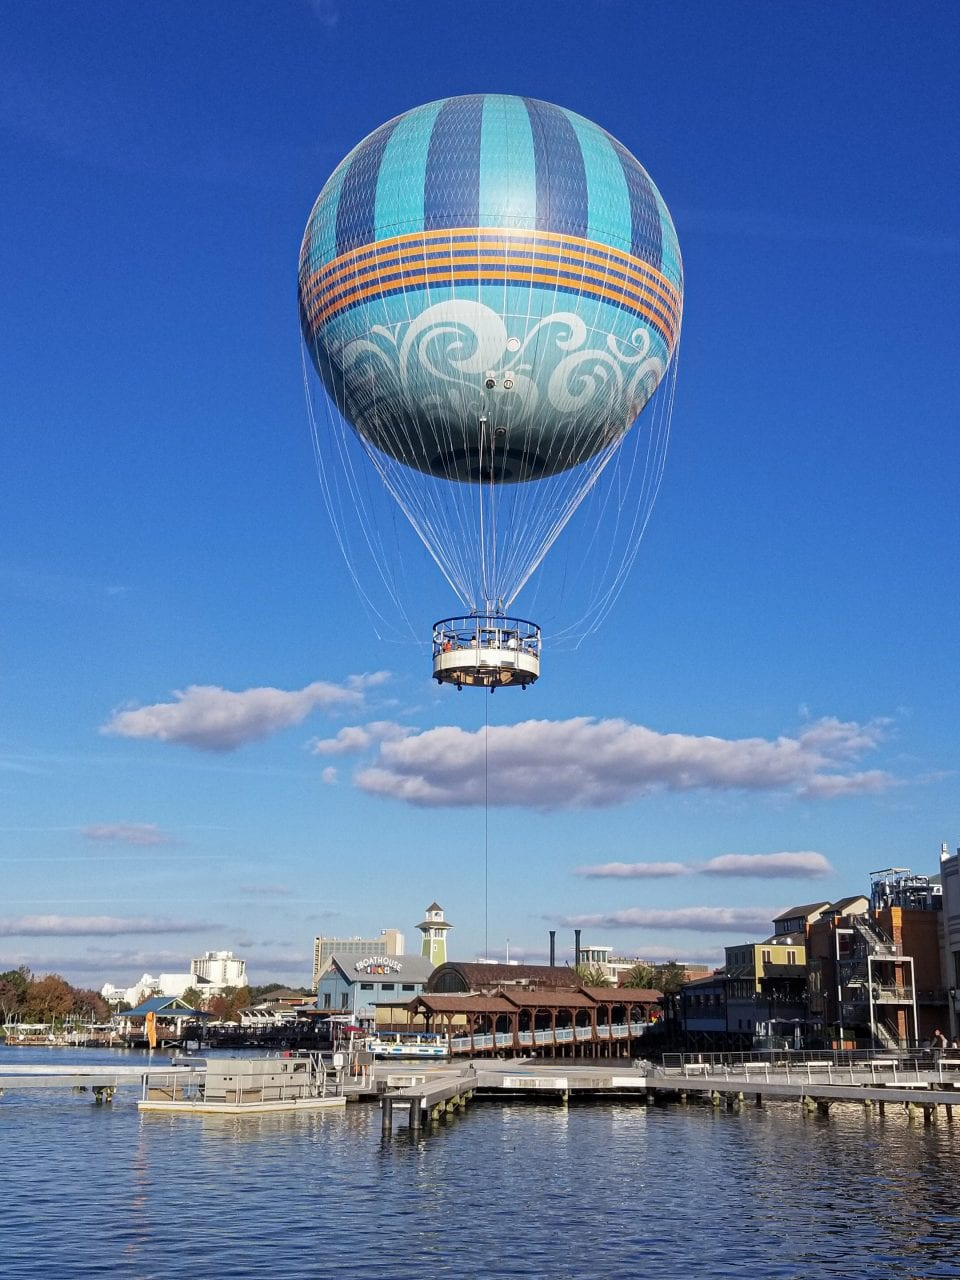 Balloon rides at Disney Springs